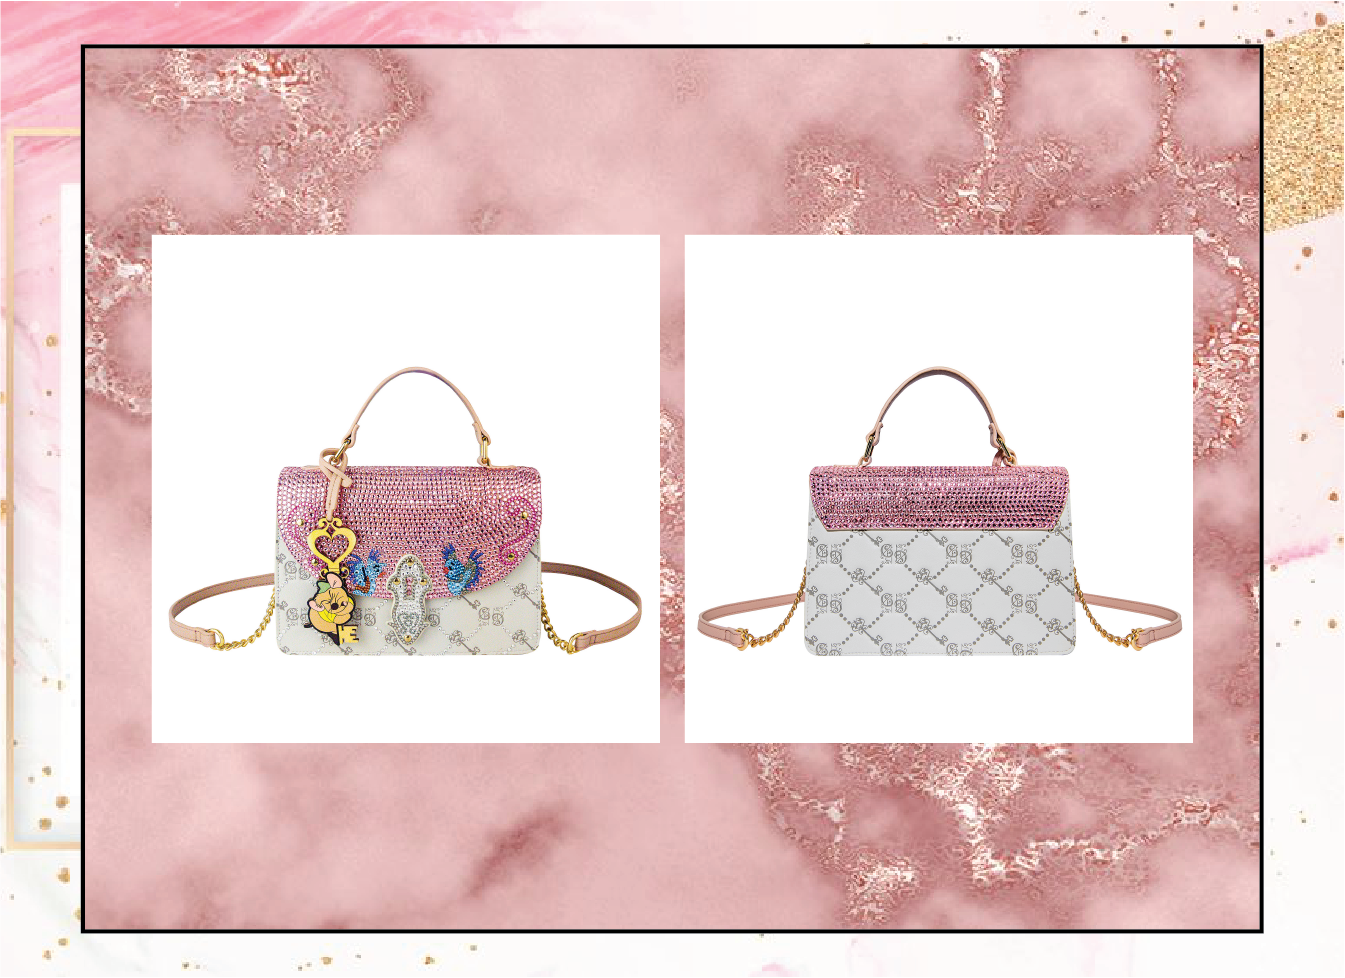 Introducing the New Crystalized Disney Cinderella Collections by Danielle Nicole 8